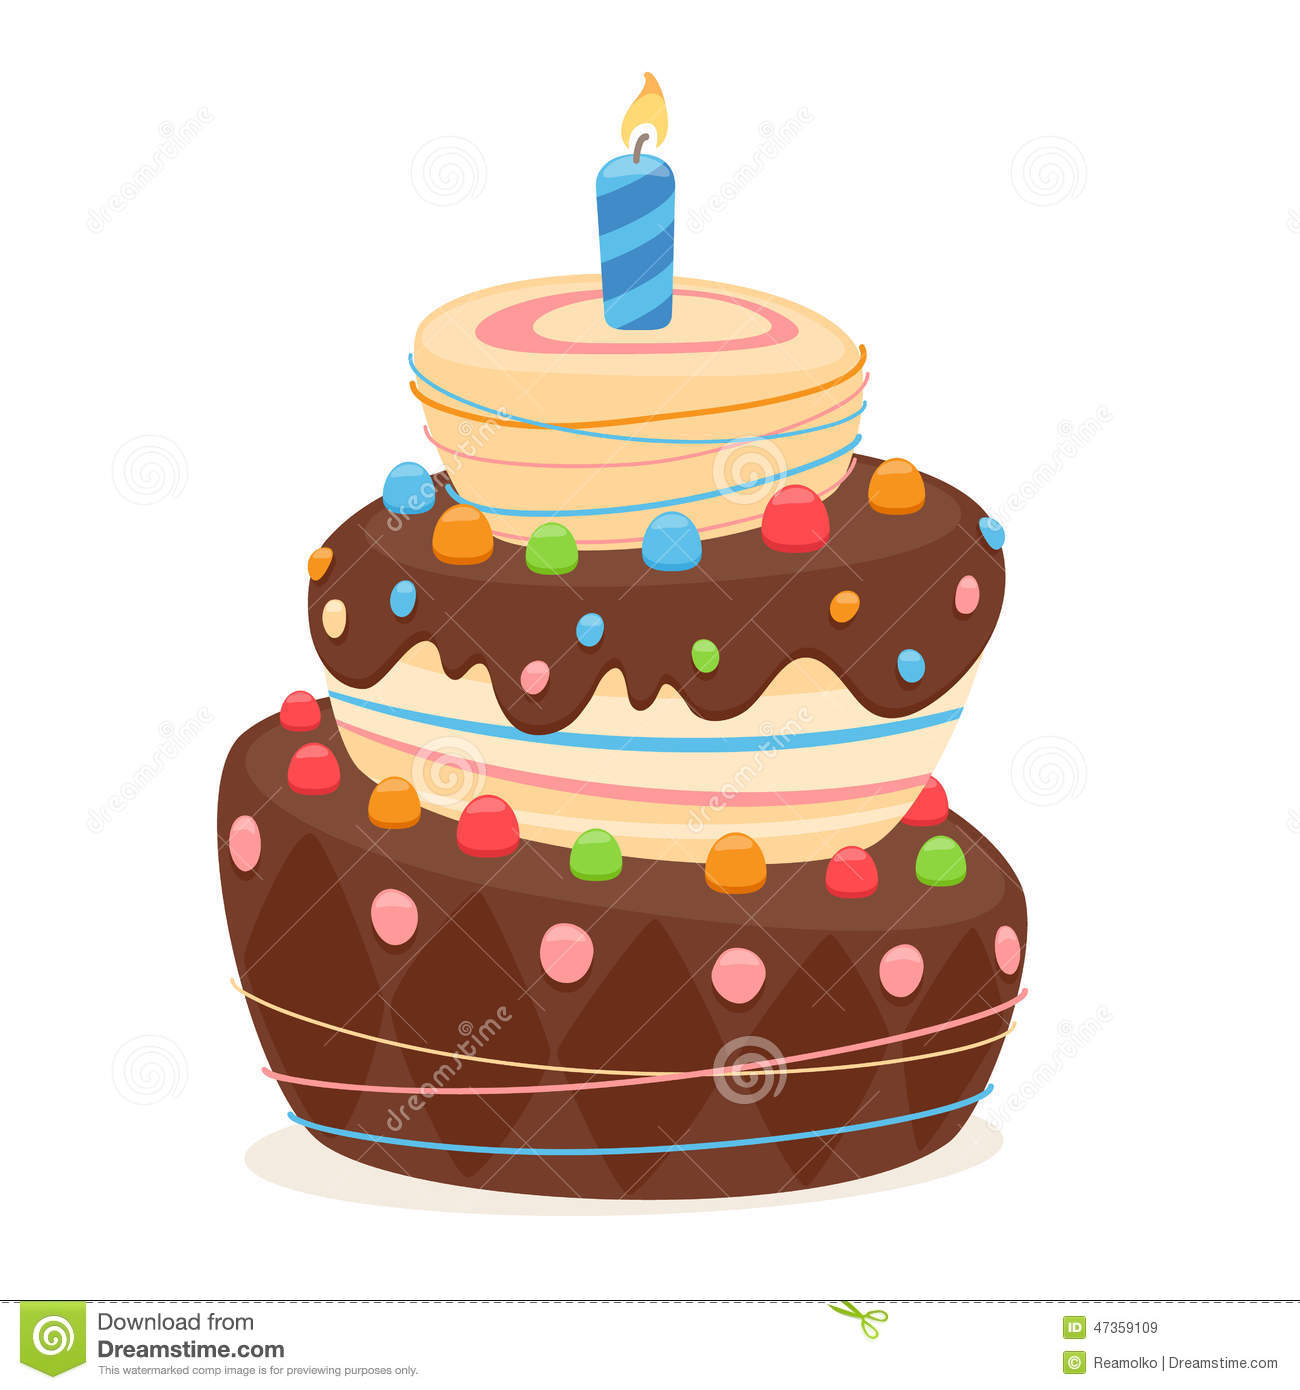 Cake With Icing Vector : Birthday Cake With Candle And Chocolate Frosting. Stock ...